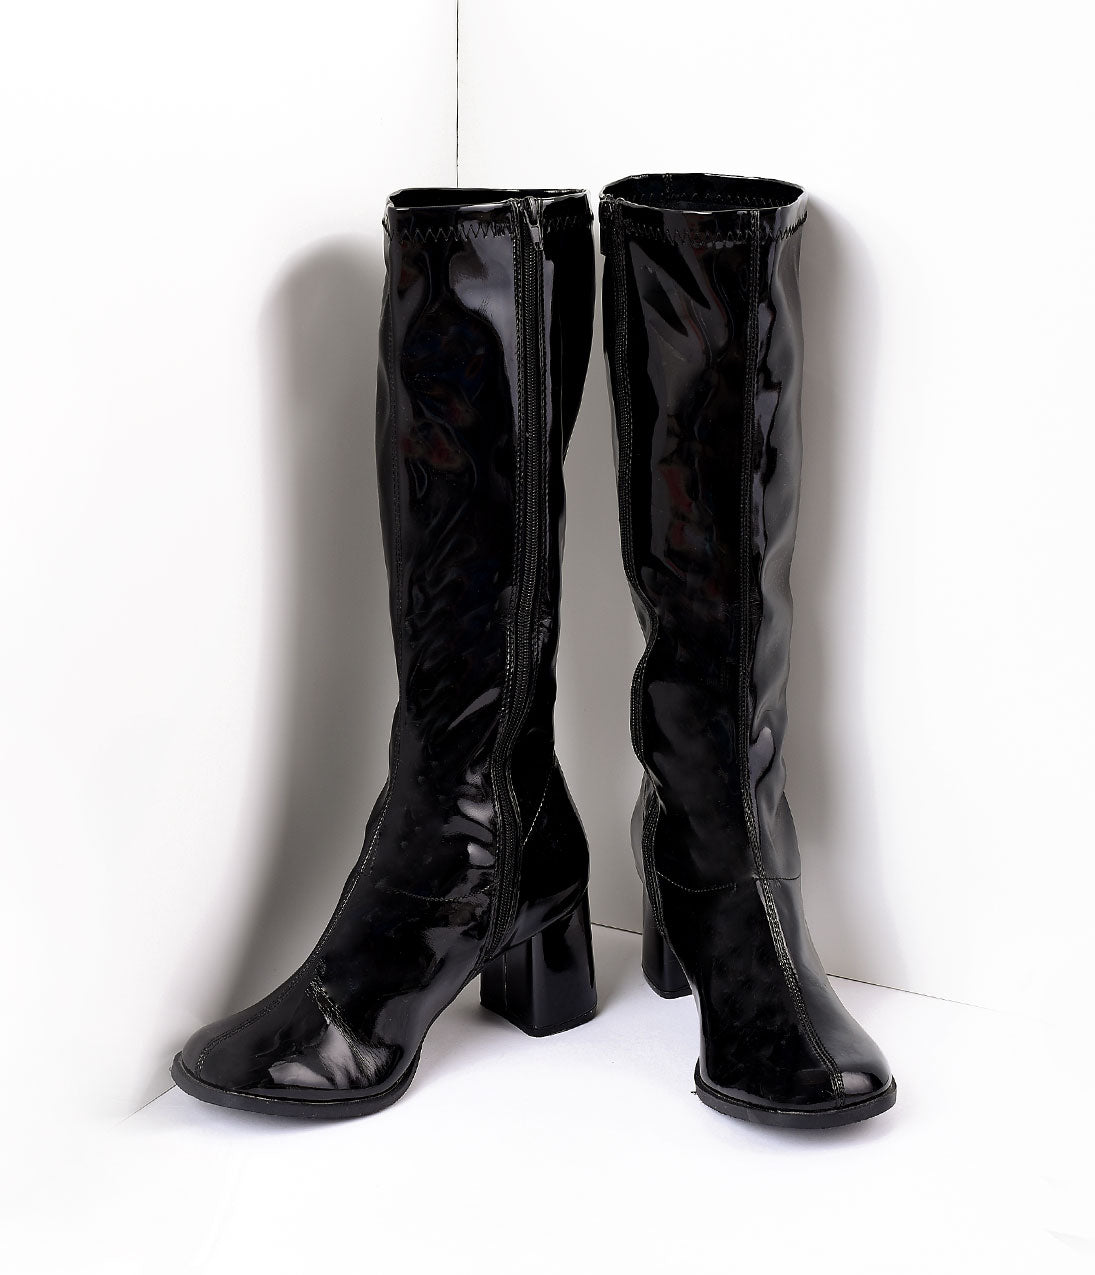 Vintage Boots- Buy Winter Retro Boots Black Patent Knee High Go Go Boots $58.00 AT vintagedancer.com